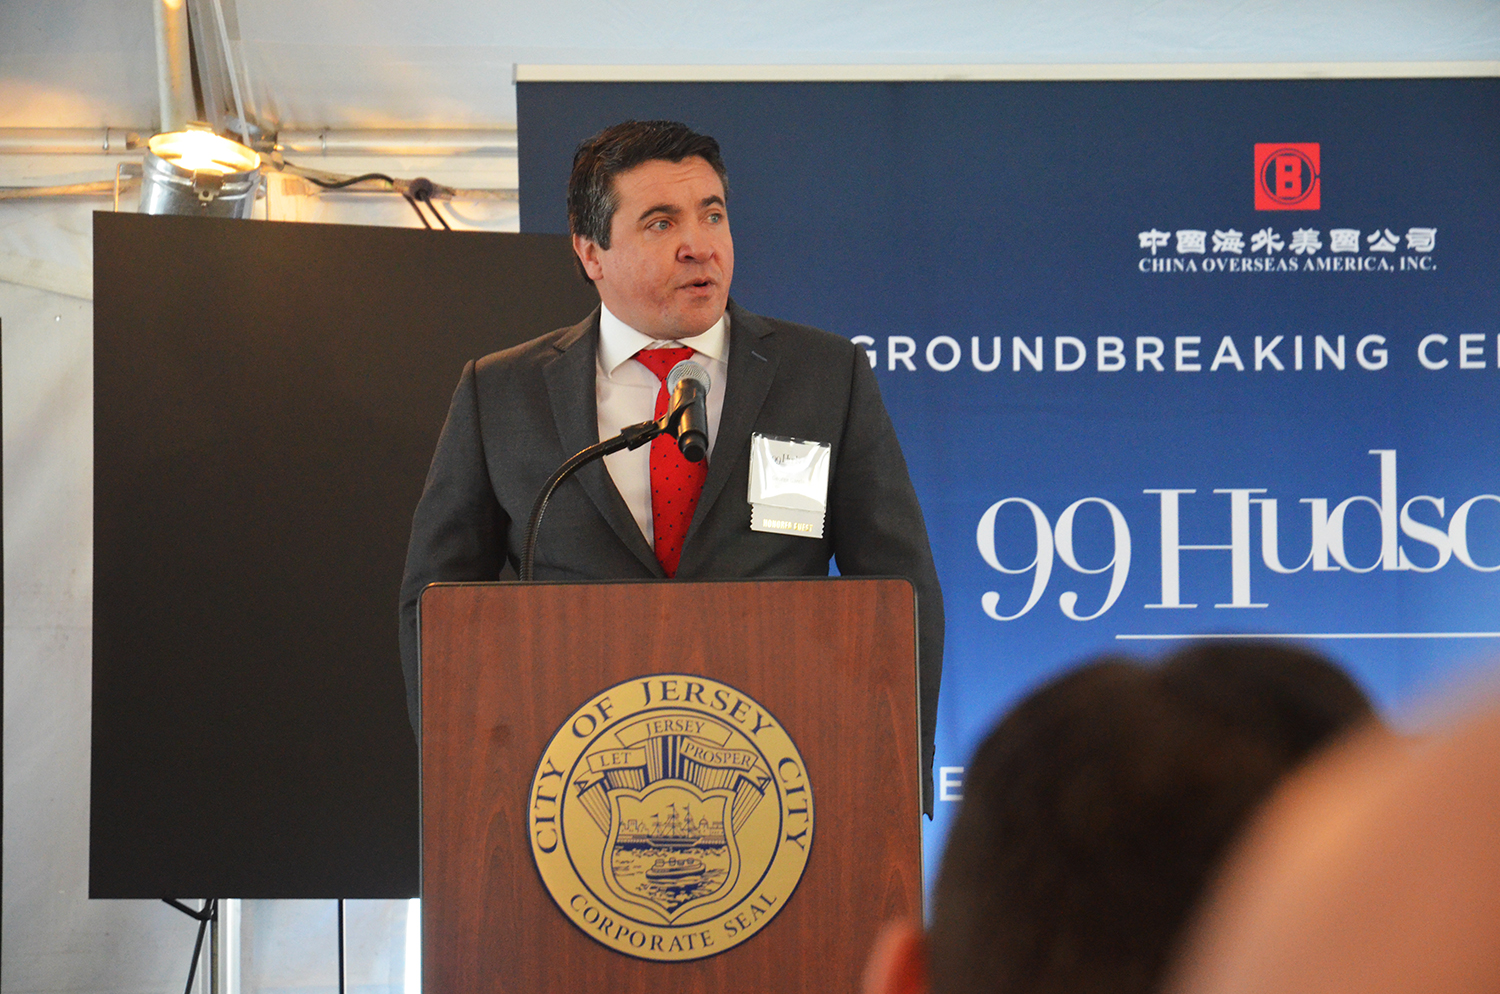 George Garcia speaks at the groundbreaking for 99 Hudson Street.